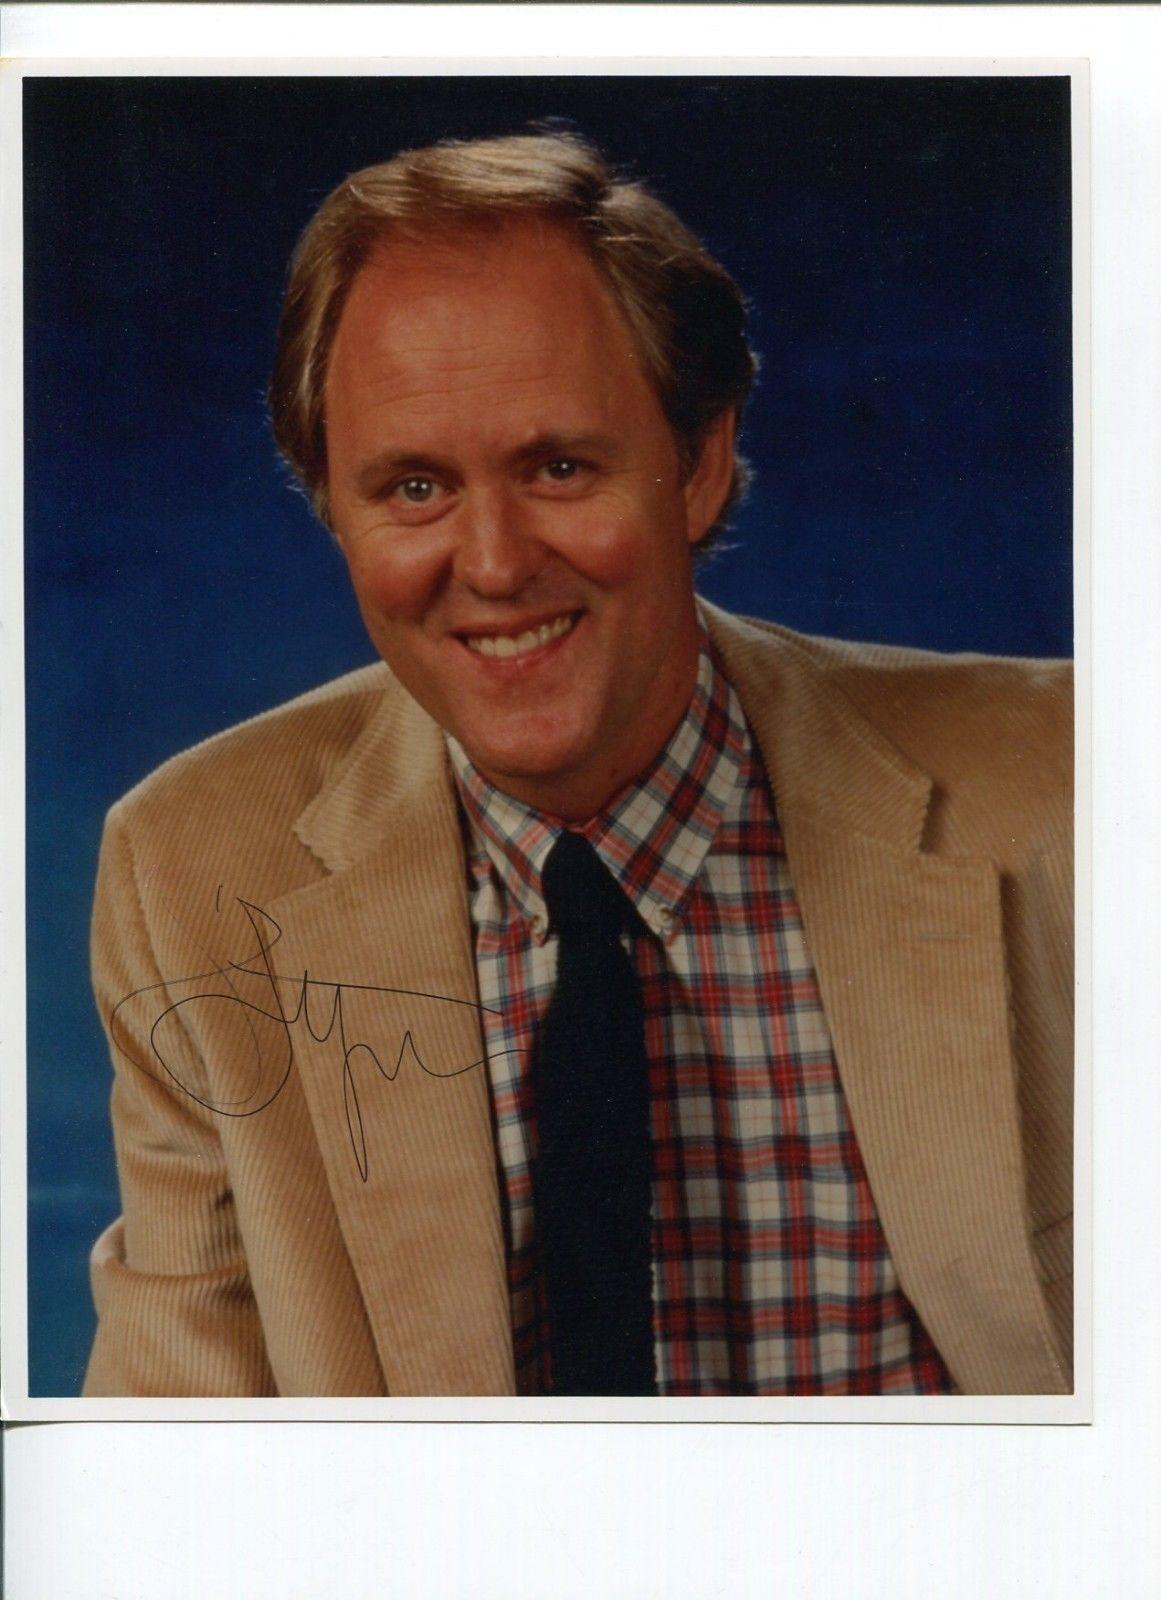 John Lithgow Shrek 3rd Rock From Sun Dexter Twilight Zone Signed Autograph Photo